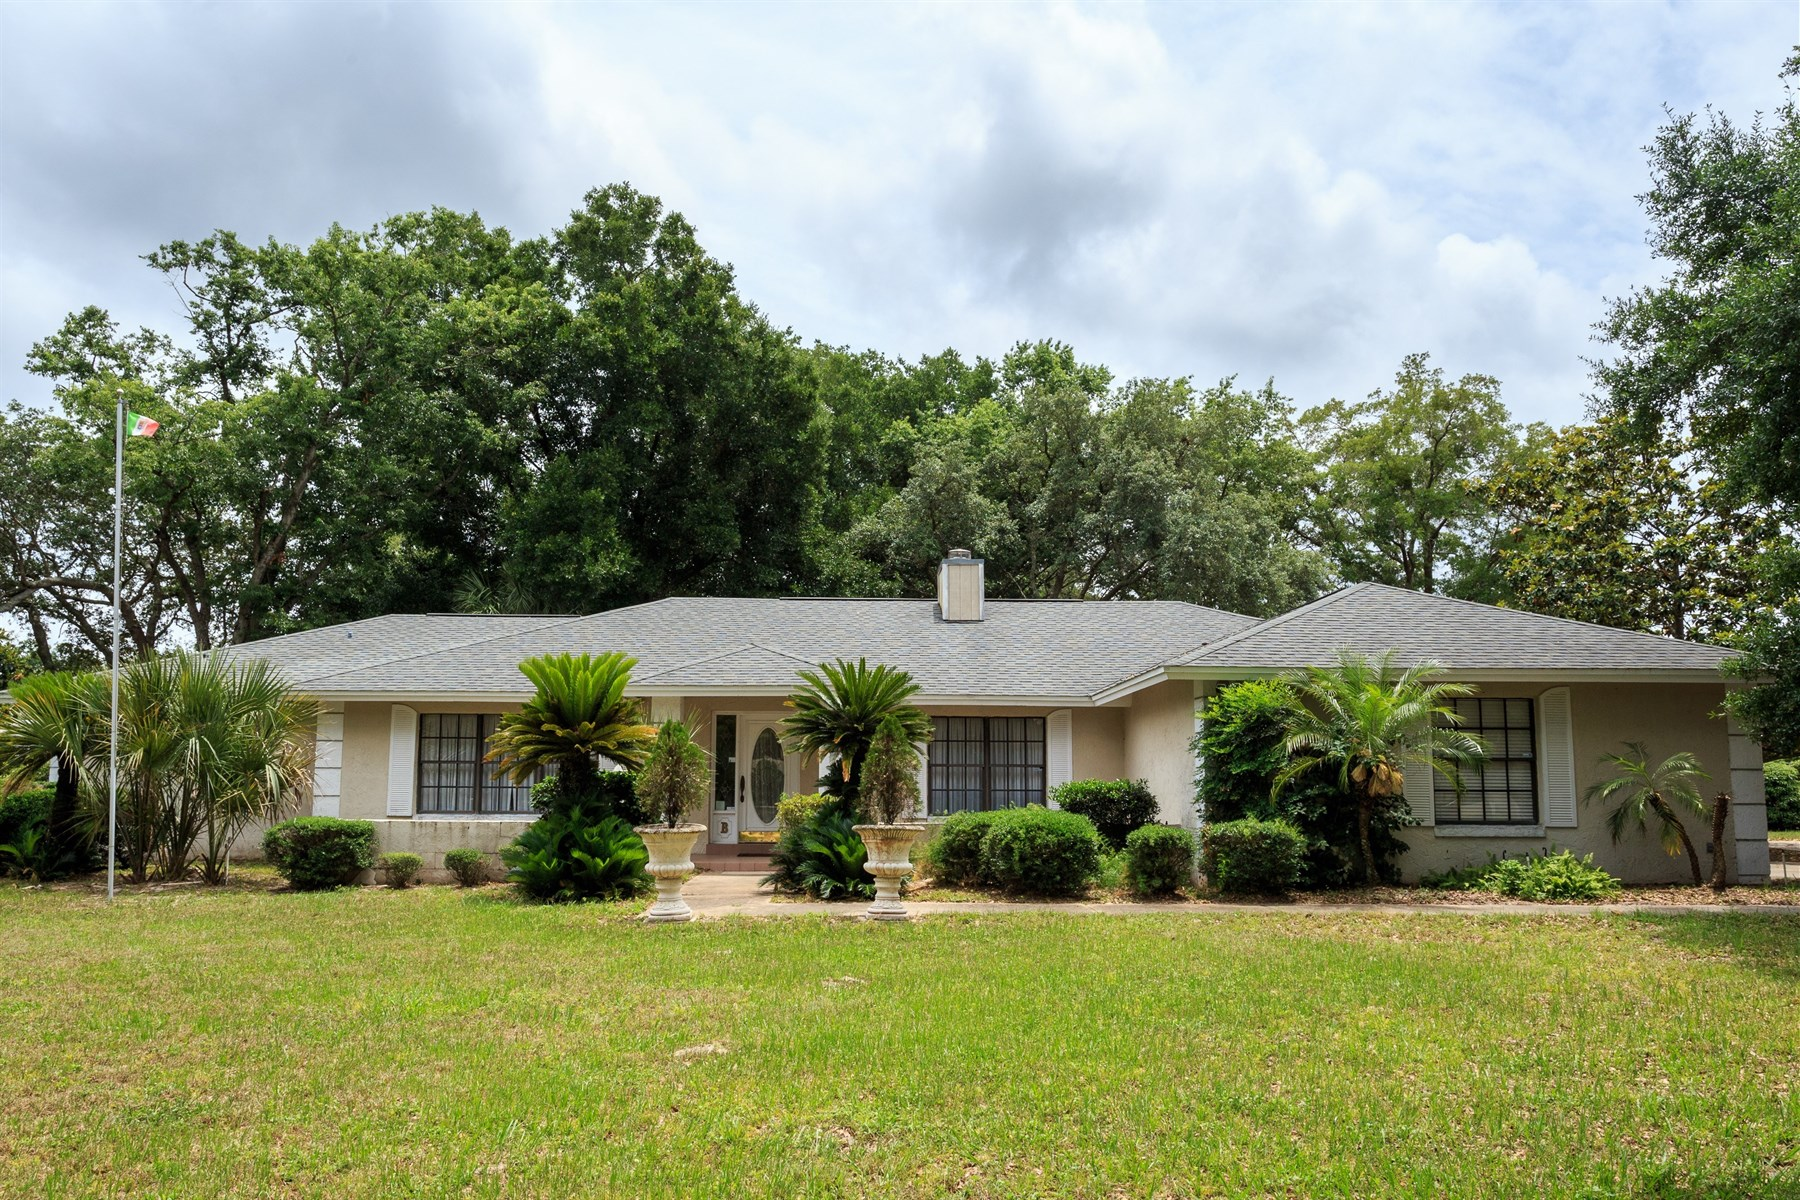 Single Family Home for Sale at ORLANDO - LONGWOOD 1734 Rutledge Rd Longwood, Florida 32779 United States